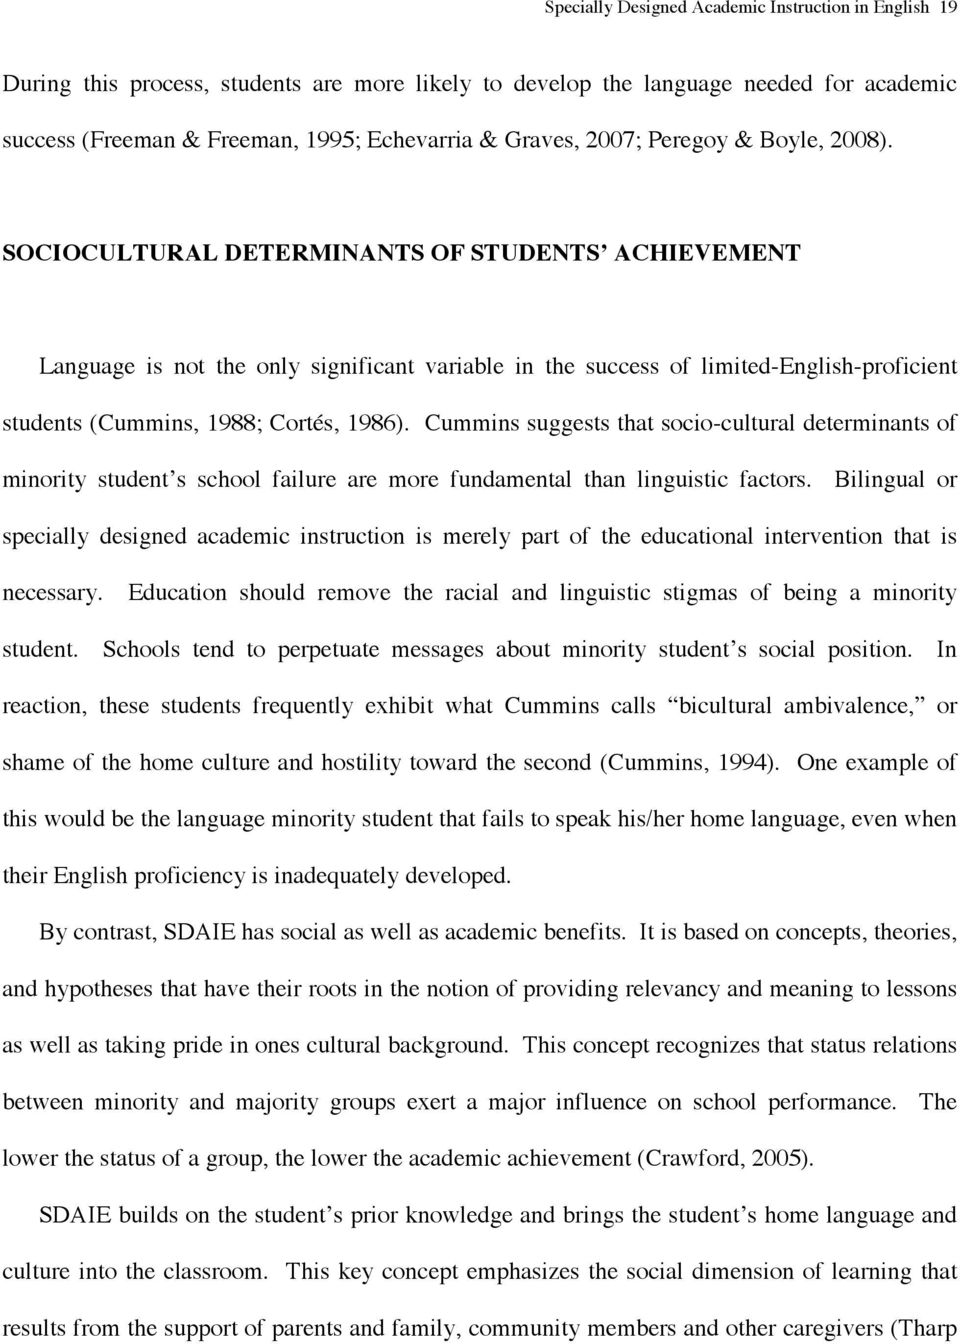 Specially Designed Academic Instruction In English Sdaie For Language Minority Students Michael Genzuk Ph D Pdf Free Download